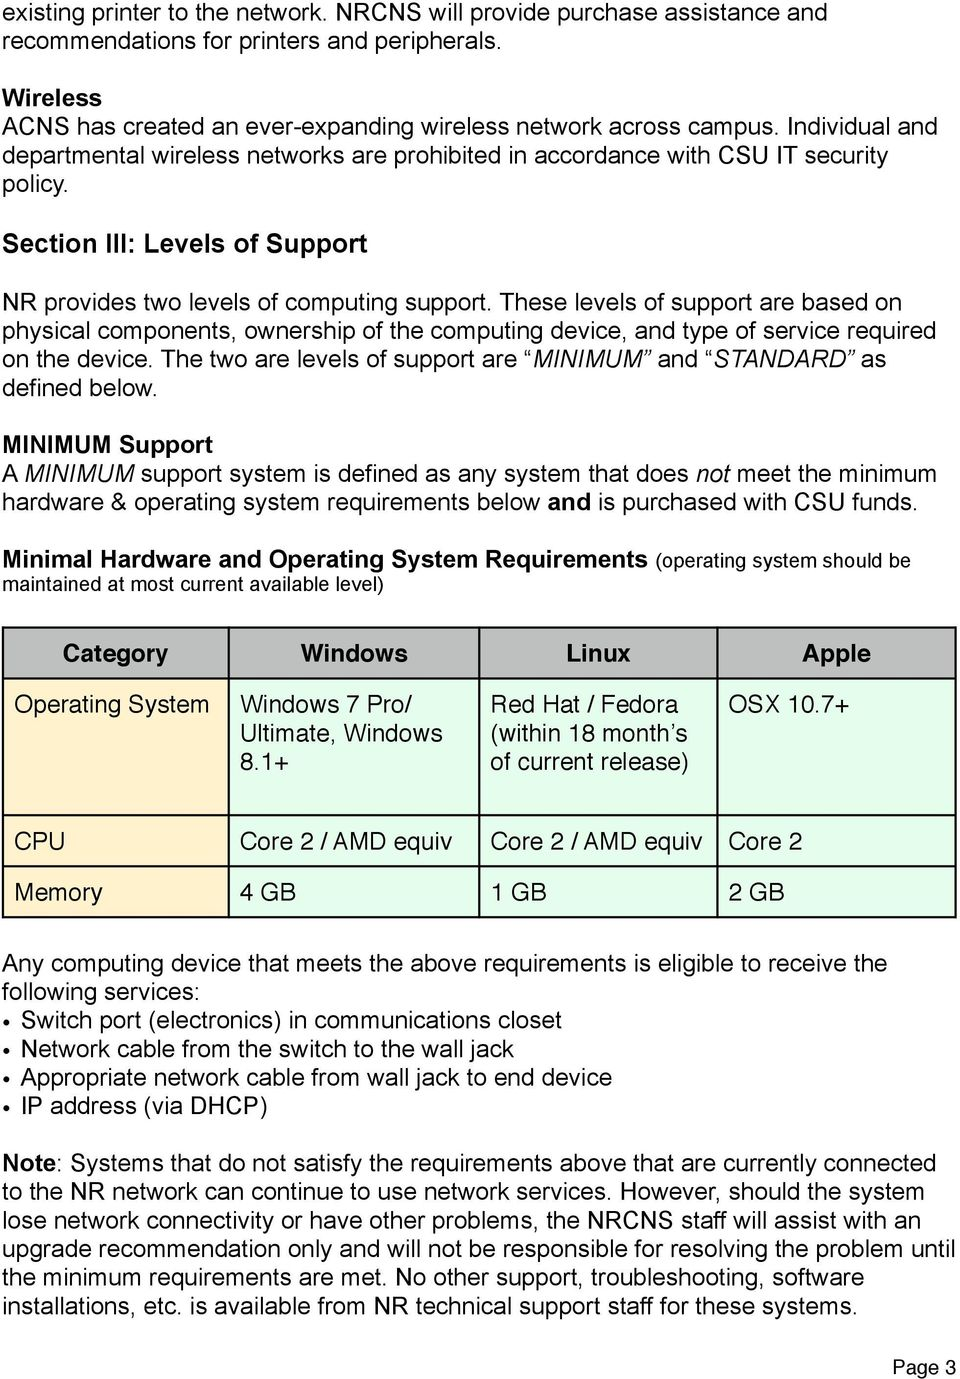 These levels of support are based on physical components, ownership of the computing device, and type of service required on the device.